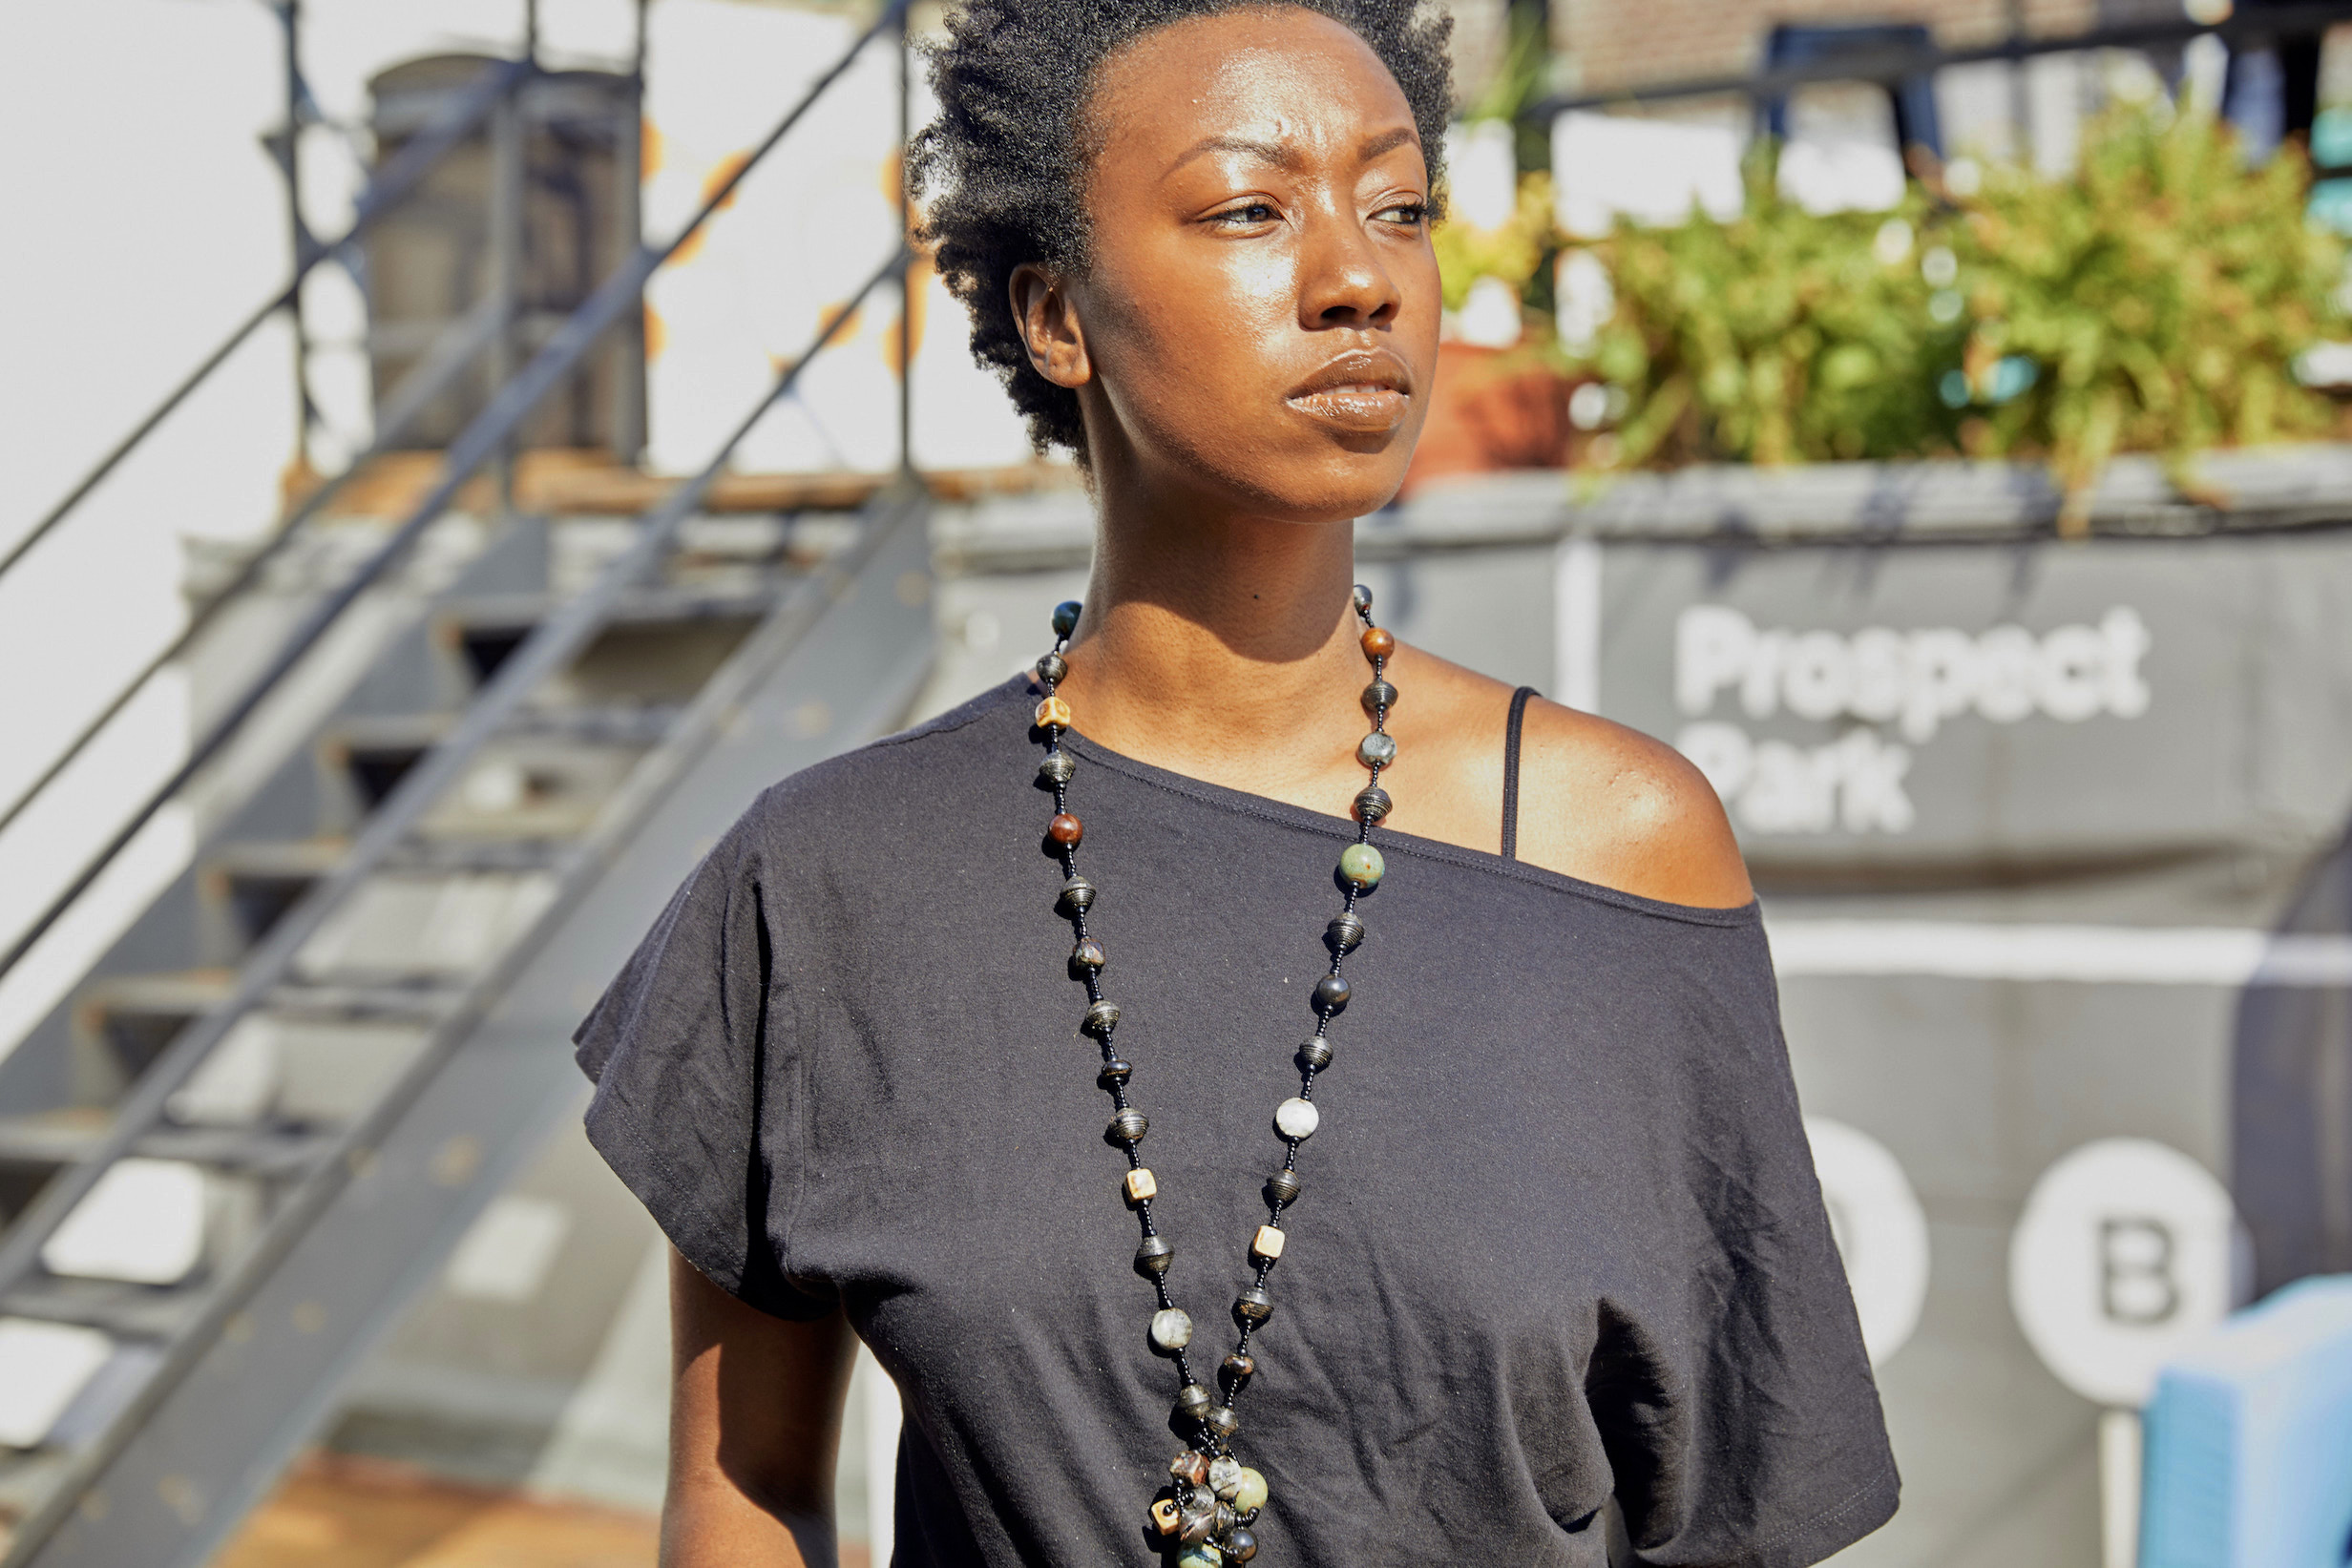 Box tee and Urban Zen necklace // A Week Of Outfits With Dominique Drakeford, Founder Of Melanin & Sustainable Style on The Good Trade